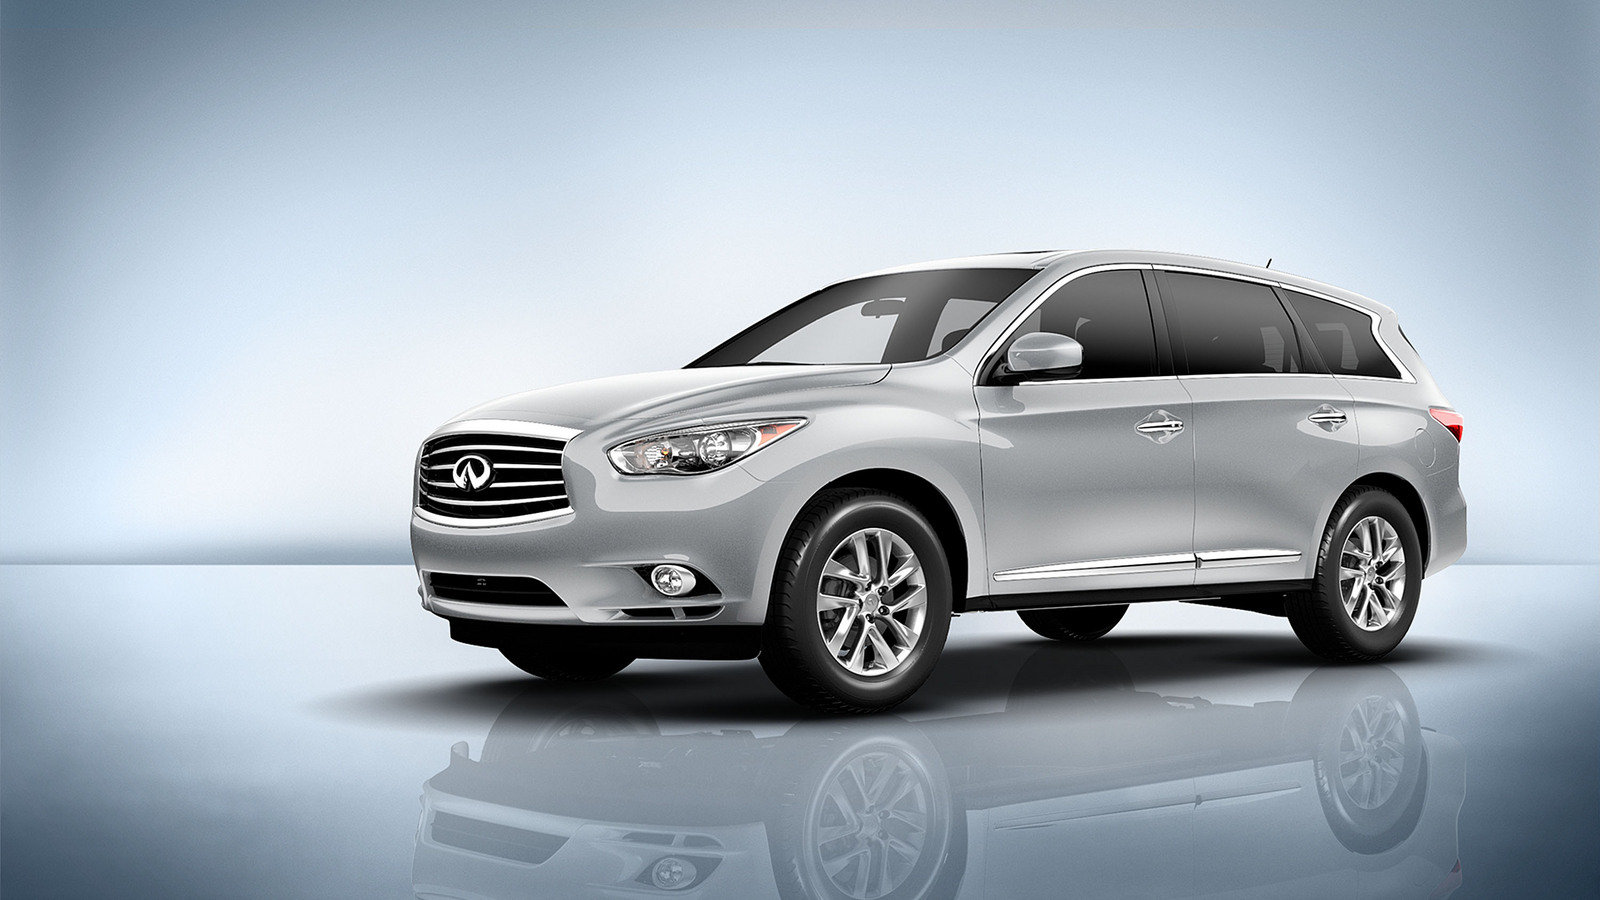 2014 infiniti qx60 picture 526846 car review top speed. Black Bedroom Furniture Sets. Home Design Ideas